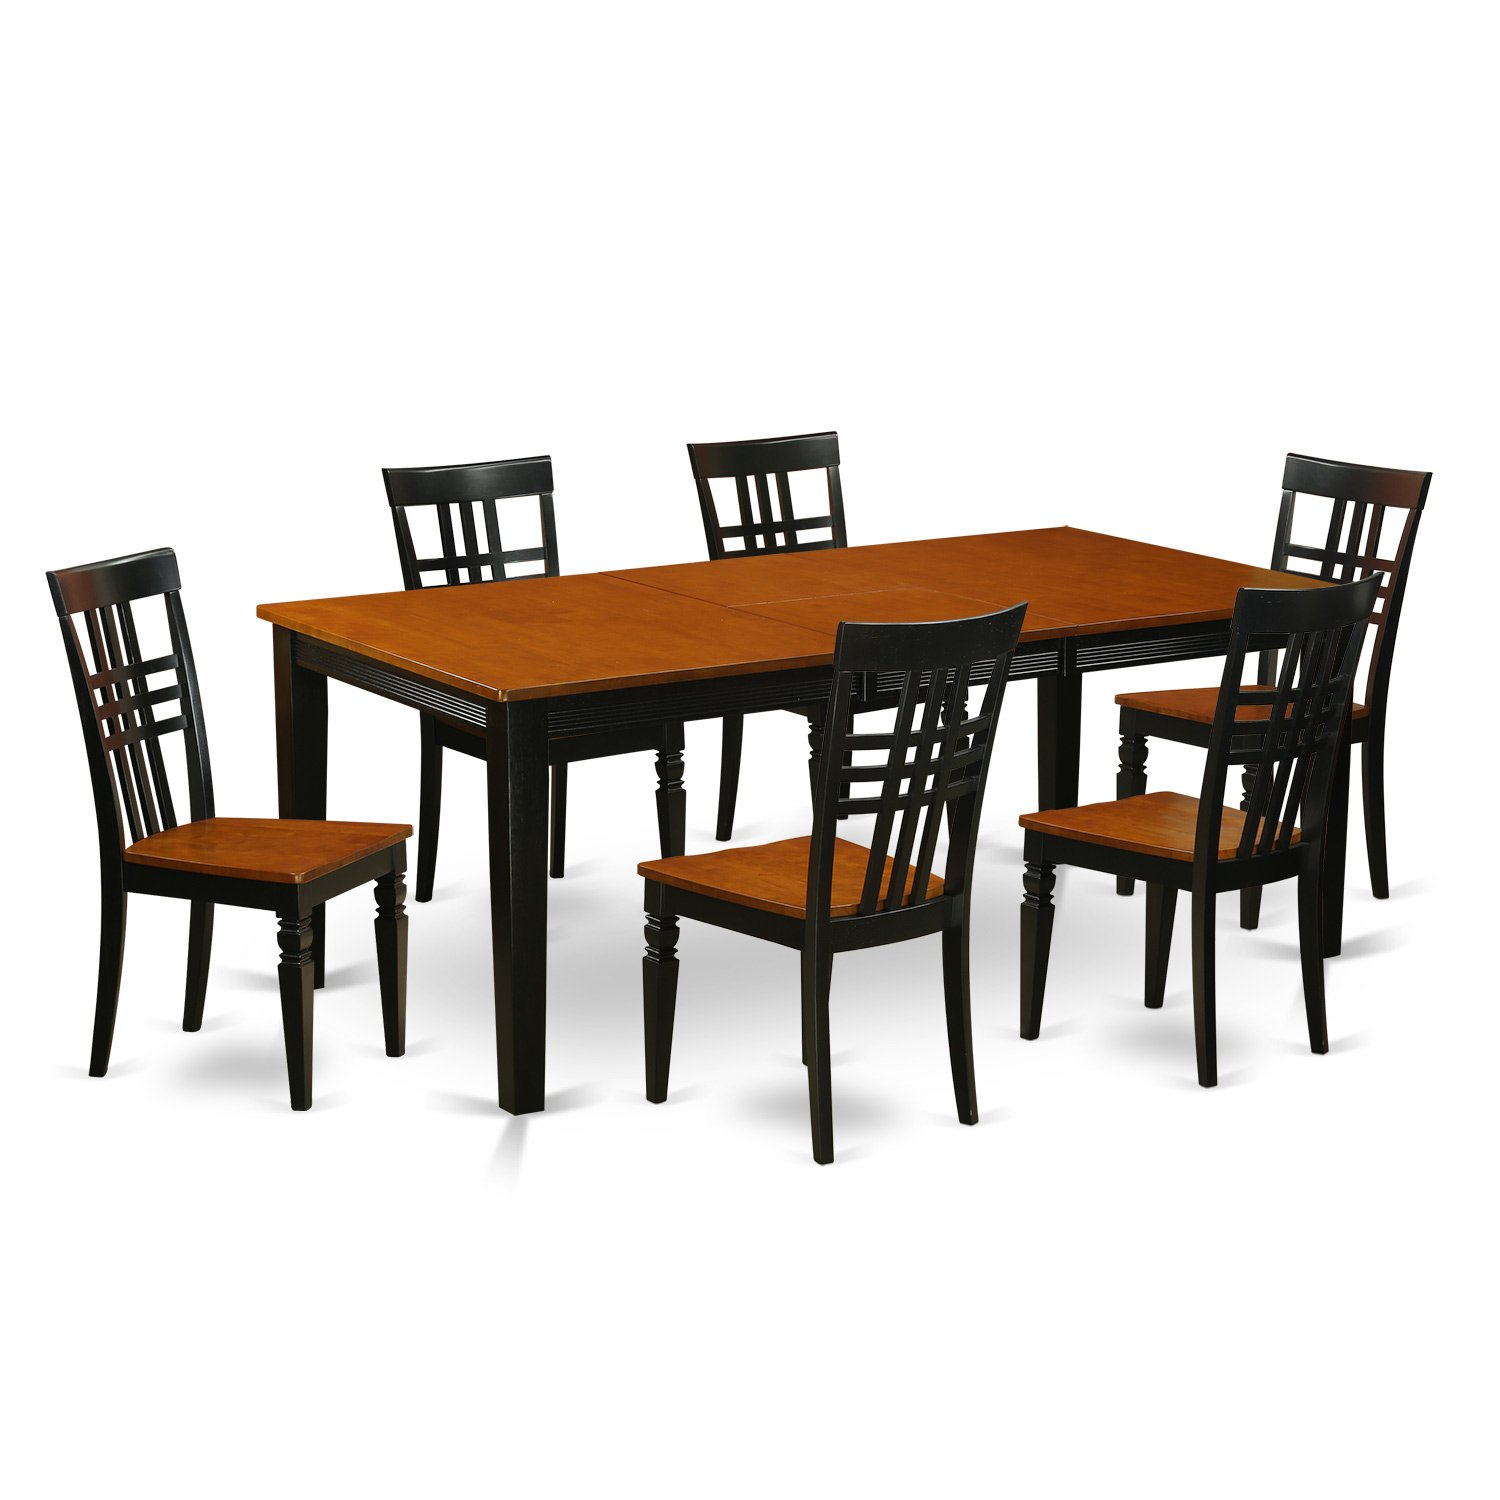 QULG7-BCH-W 7 PcKitchen Table set with a Dining Table and 6 Dining Chairs in Black and Cherry